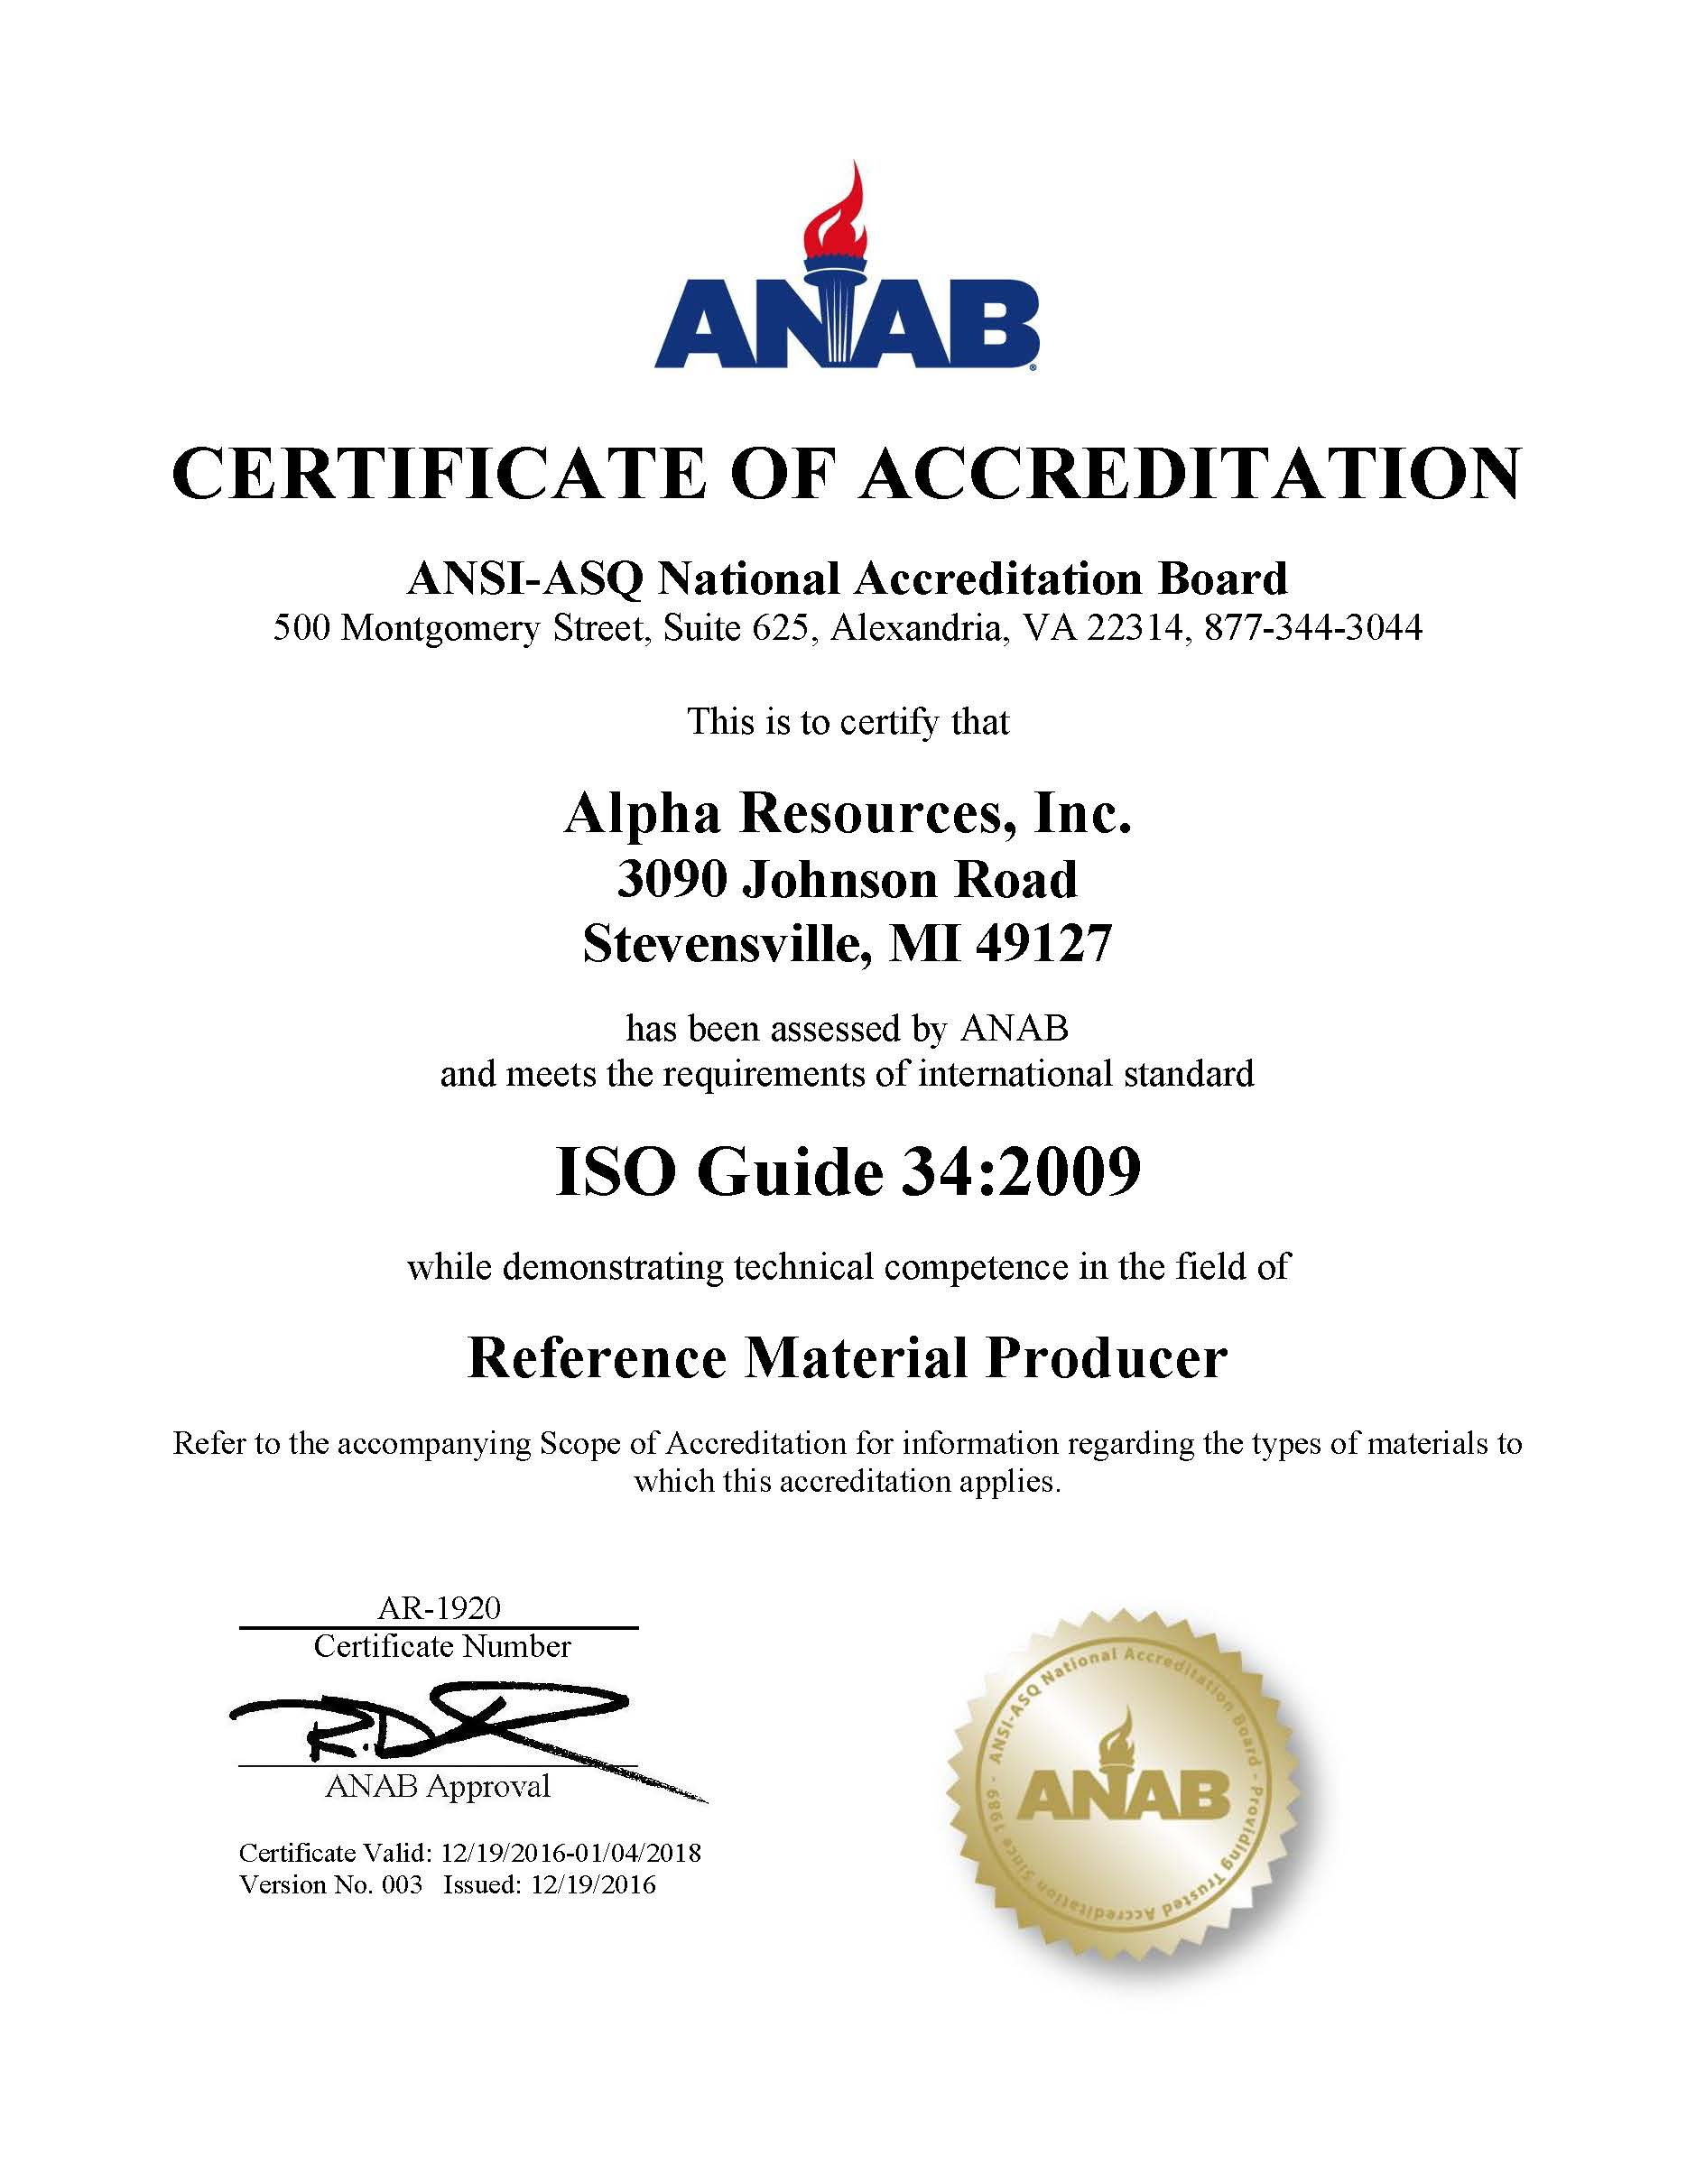 Alpha-Certificate-Accreditation-ISO